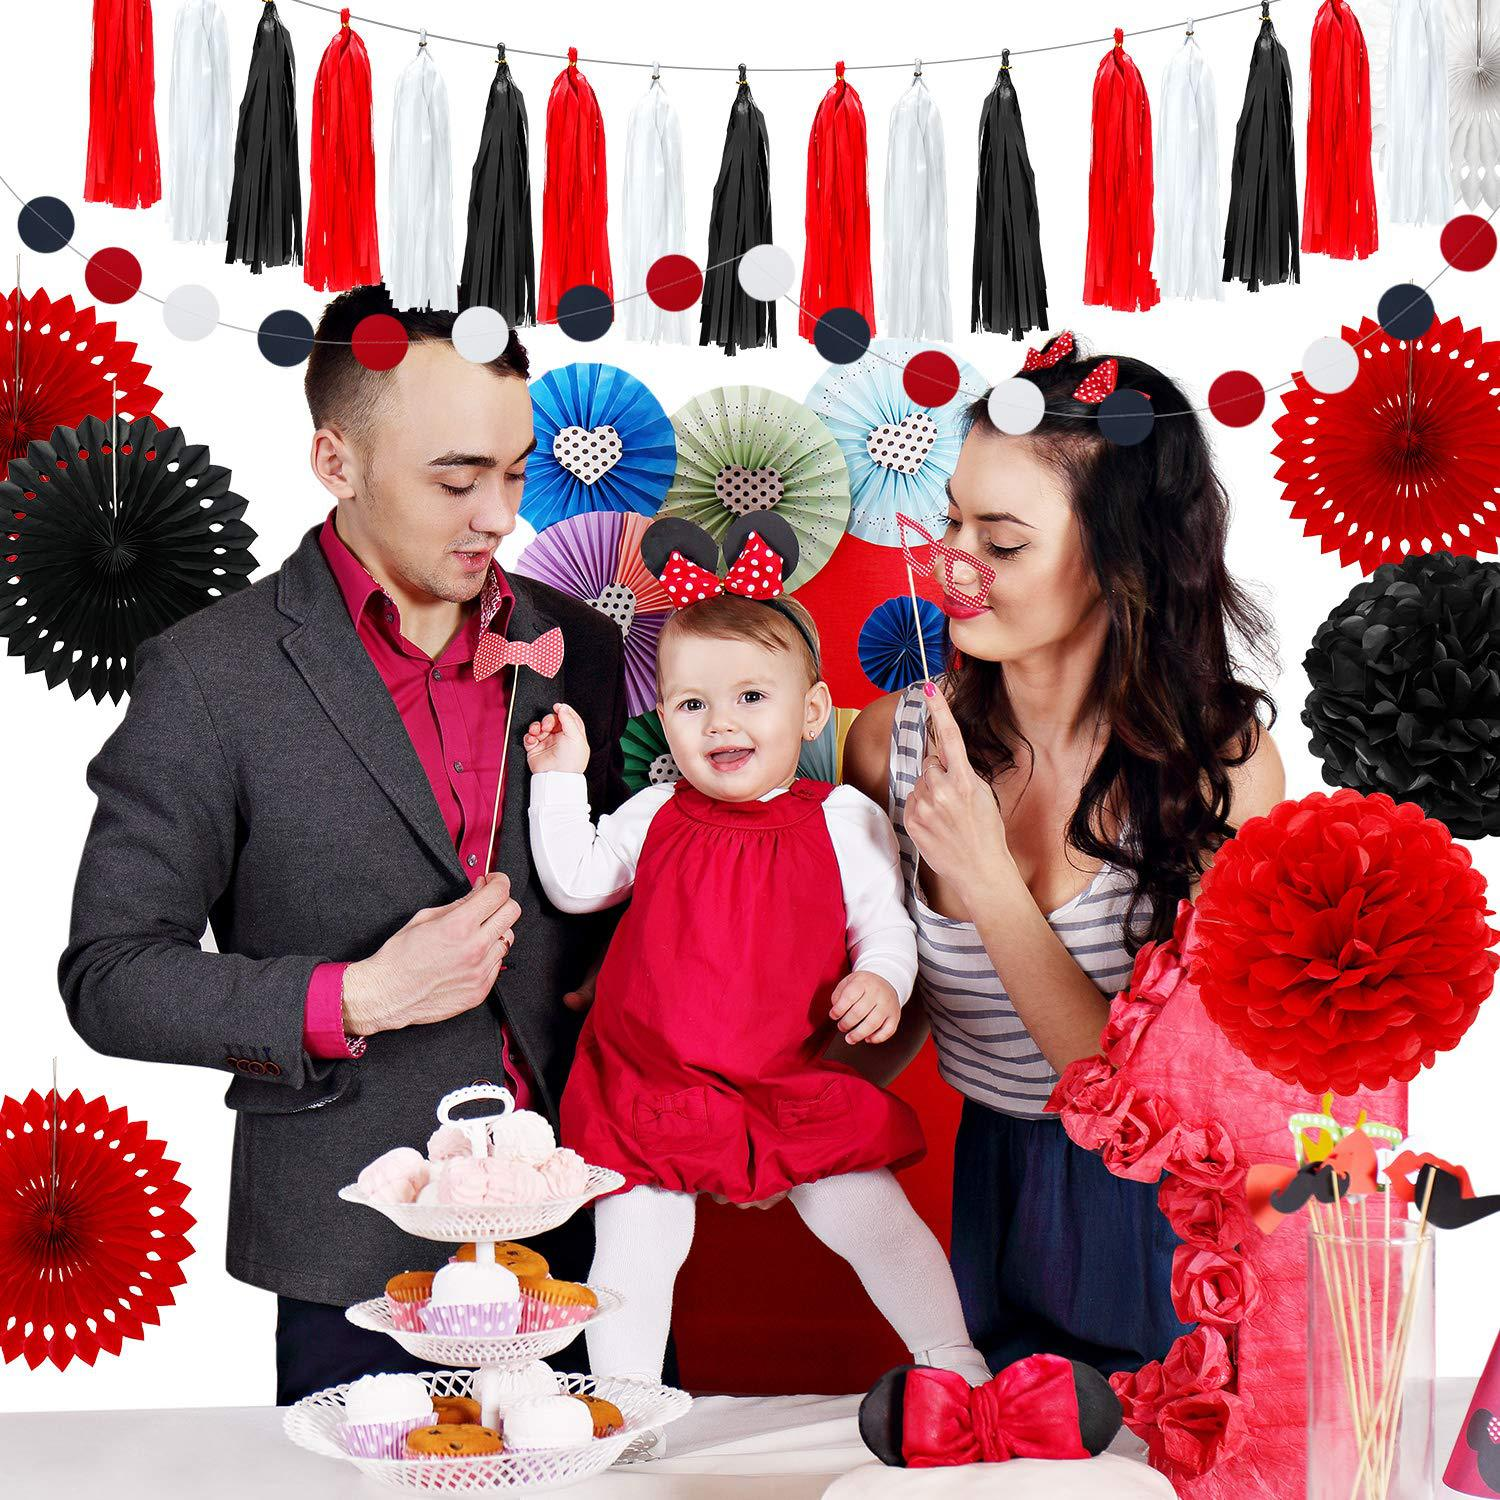 Baby Shower Graduation Ceremony Party Decoration Set Red White Black Tissue Paper PomPoms Flowers Hollow Fans Tassel Garland